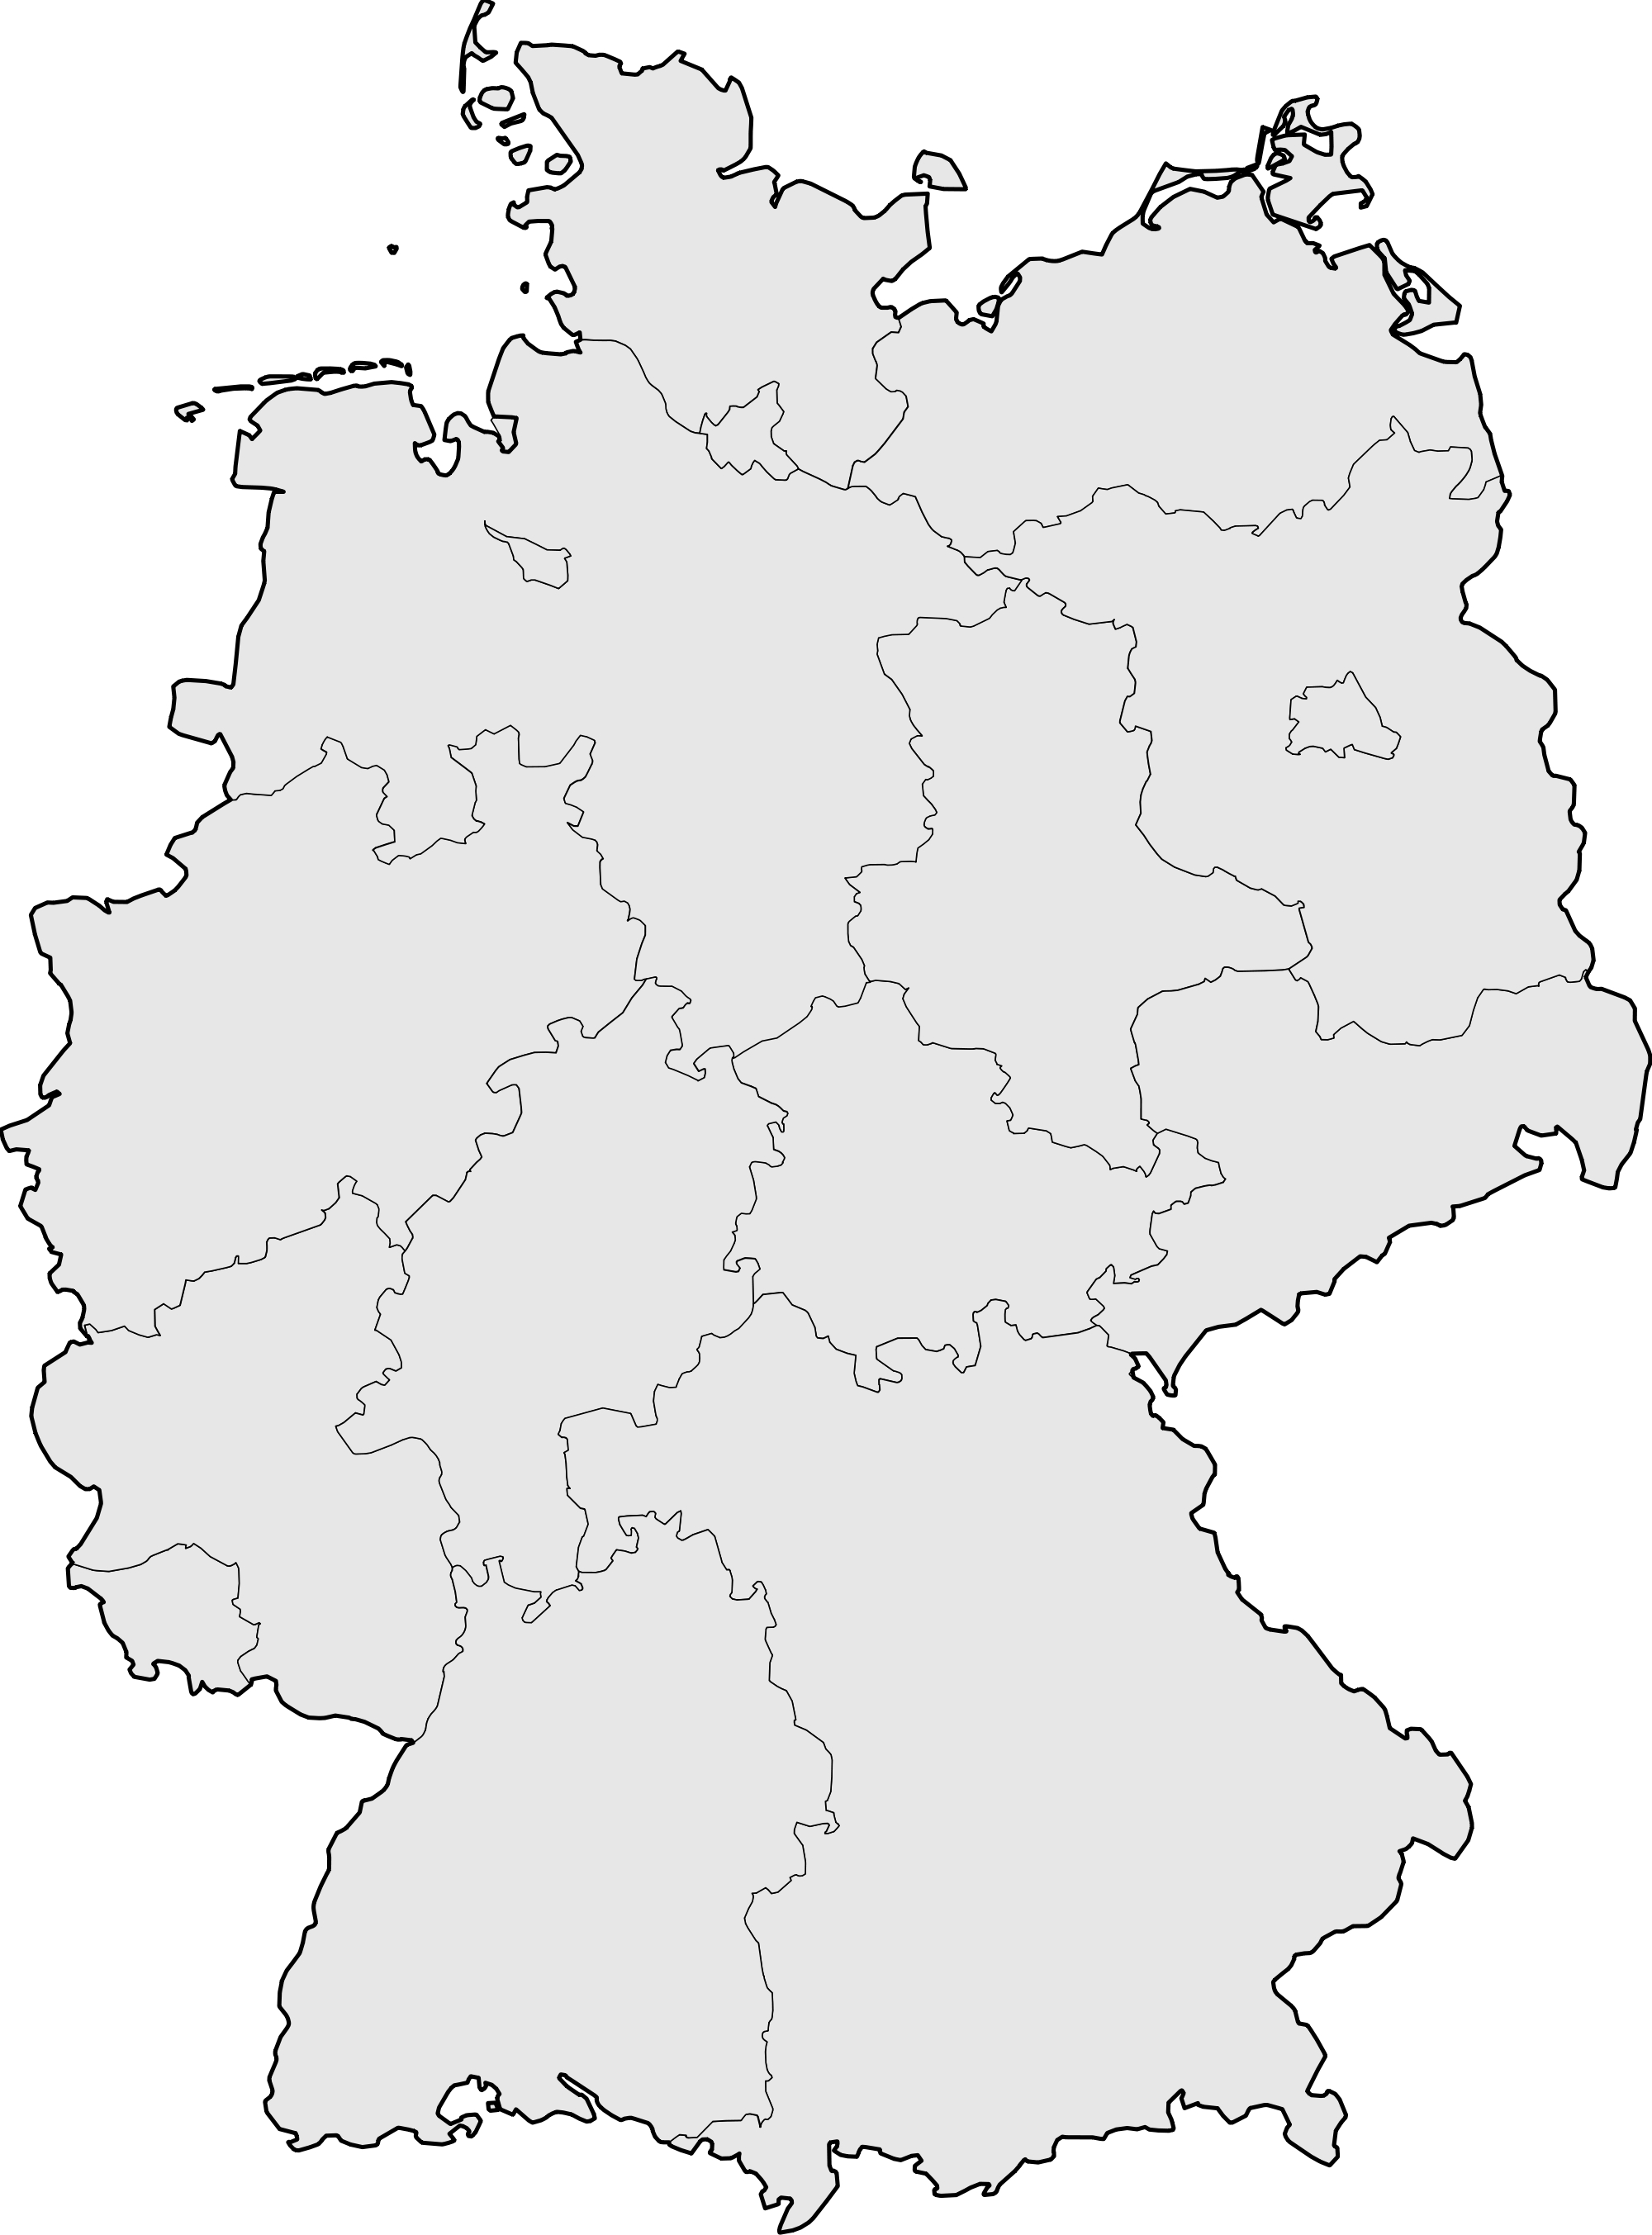 Germany Blank Map • Mapsof with regard to Outline Map Of Germany With States